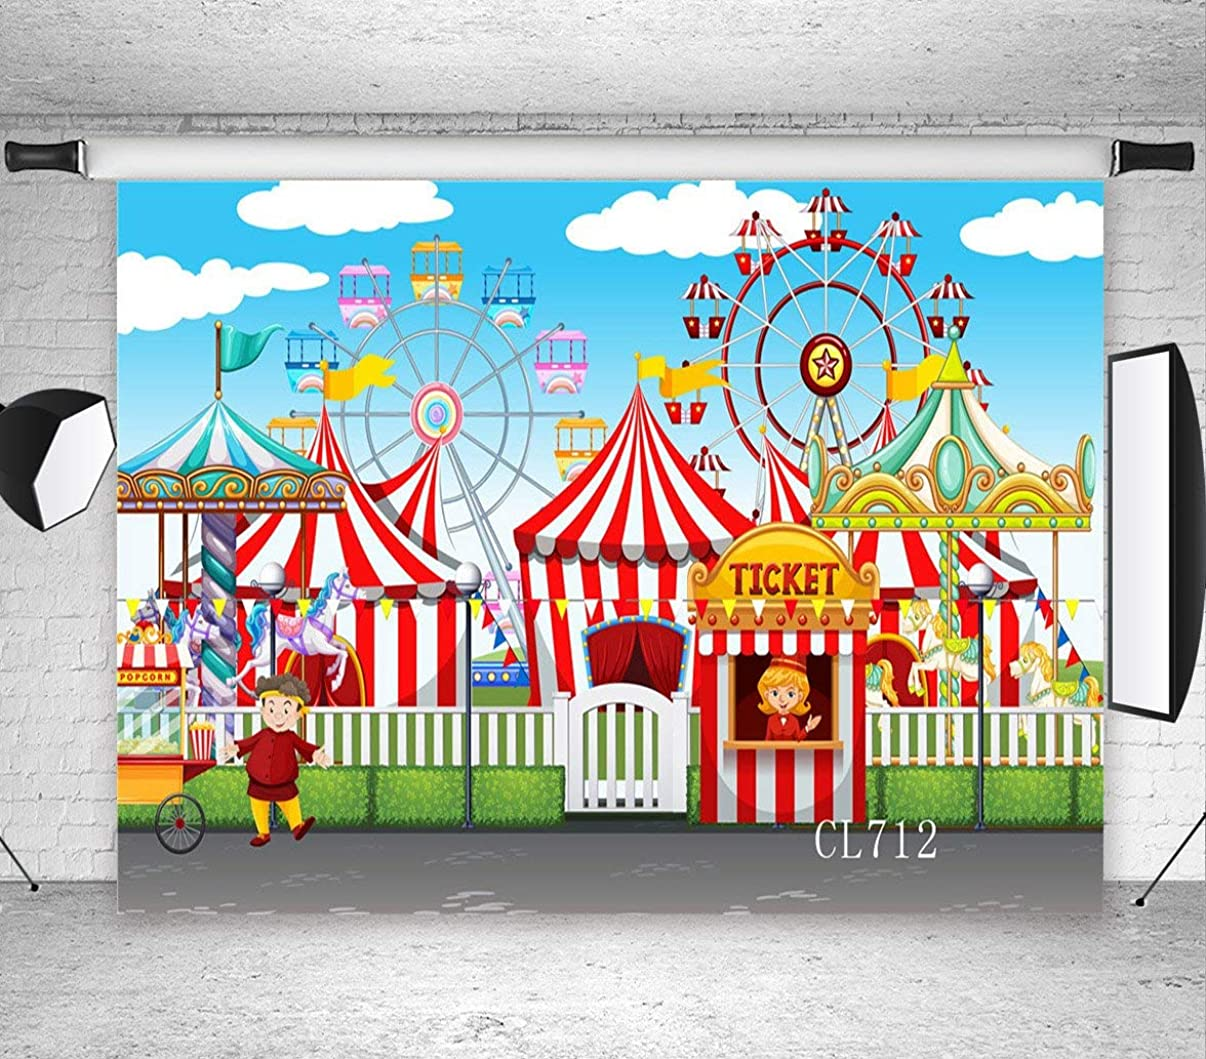 LB Circus Carnival Party Backdrop for Photography 7x5ft Vinyl Wheel Circus Tents Stratus Playground Child Baby Shower Birthday Party Decoration Photo Background Studio Props